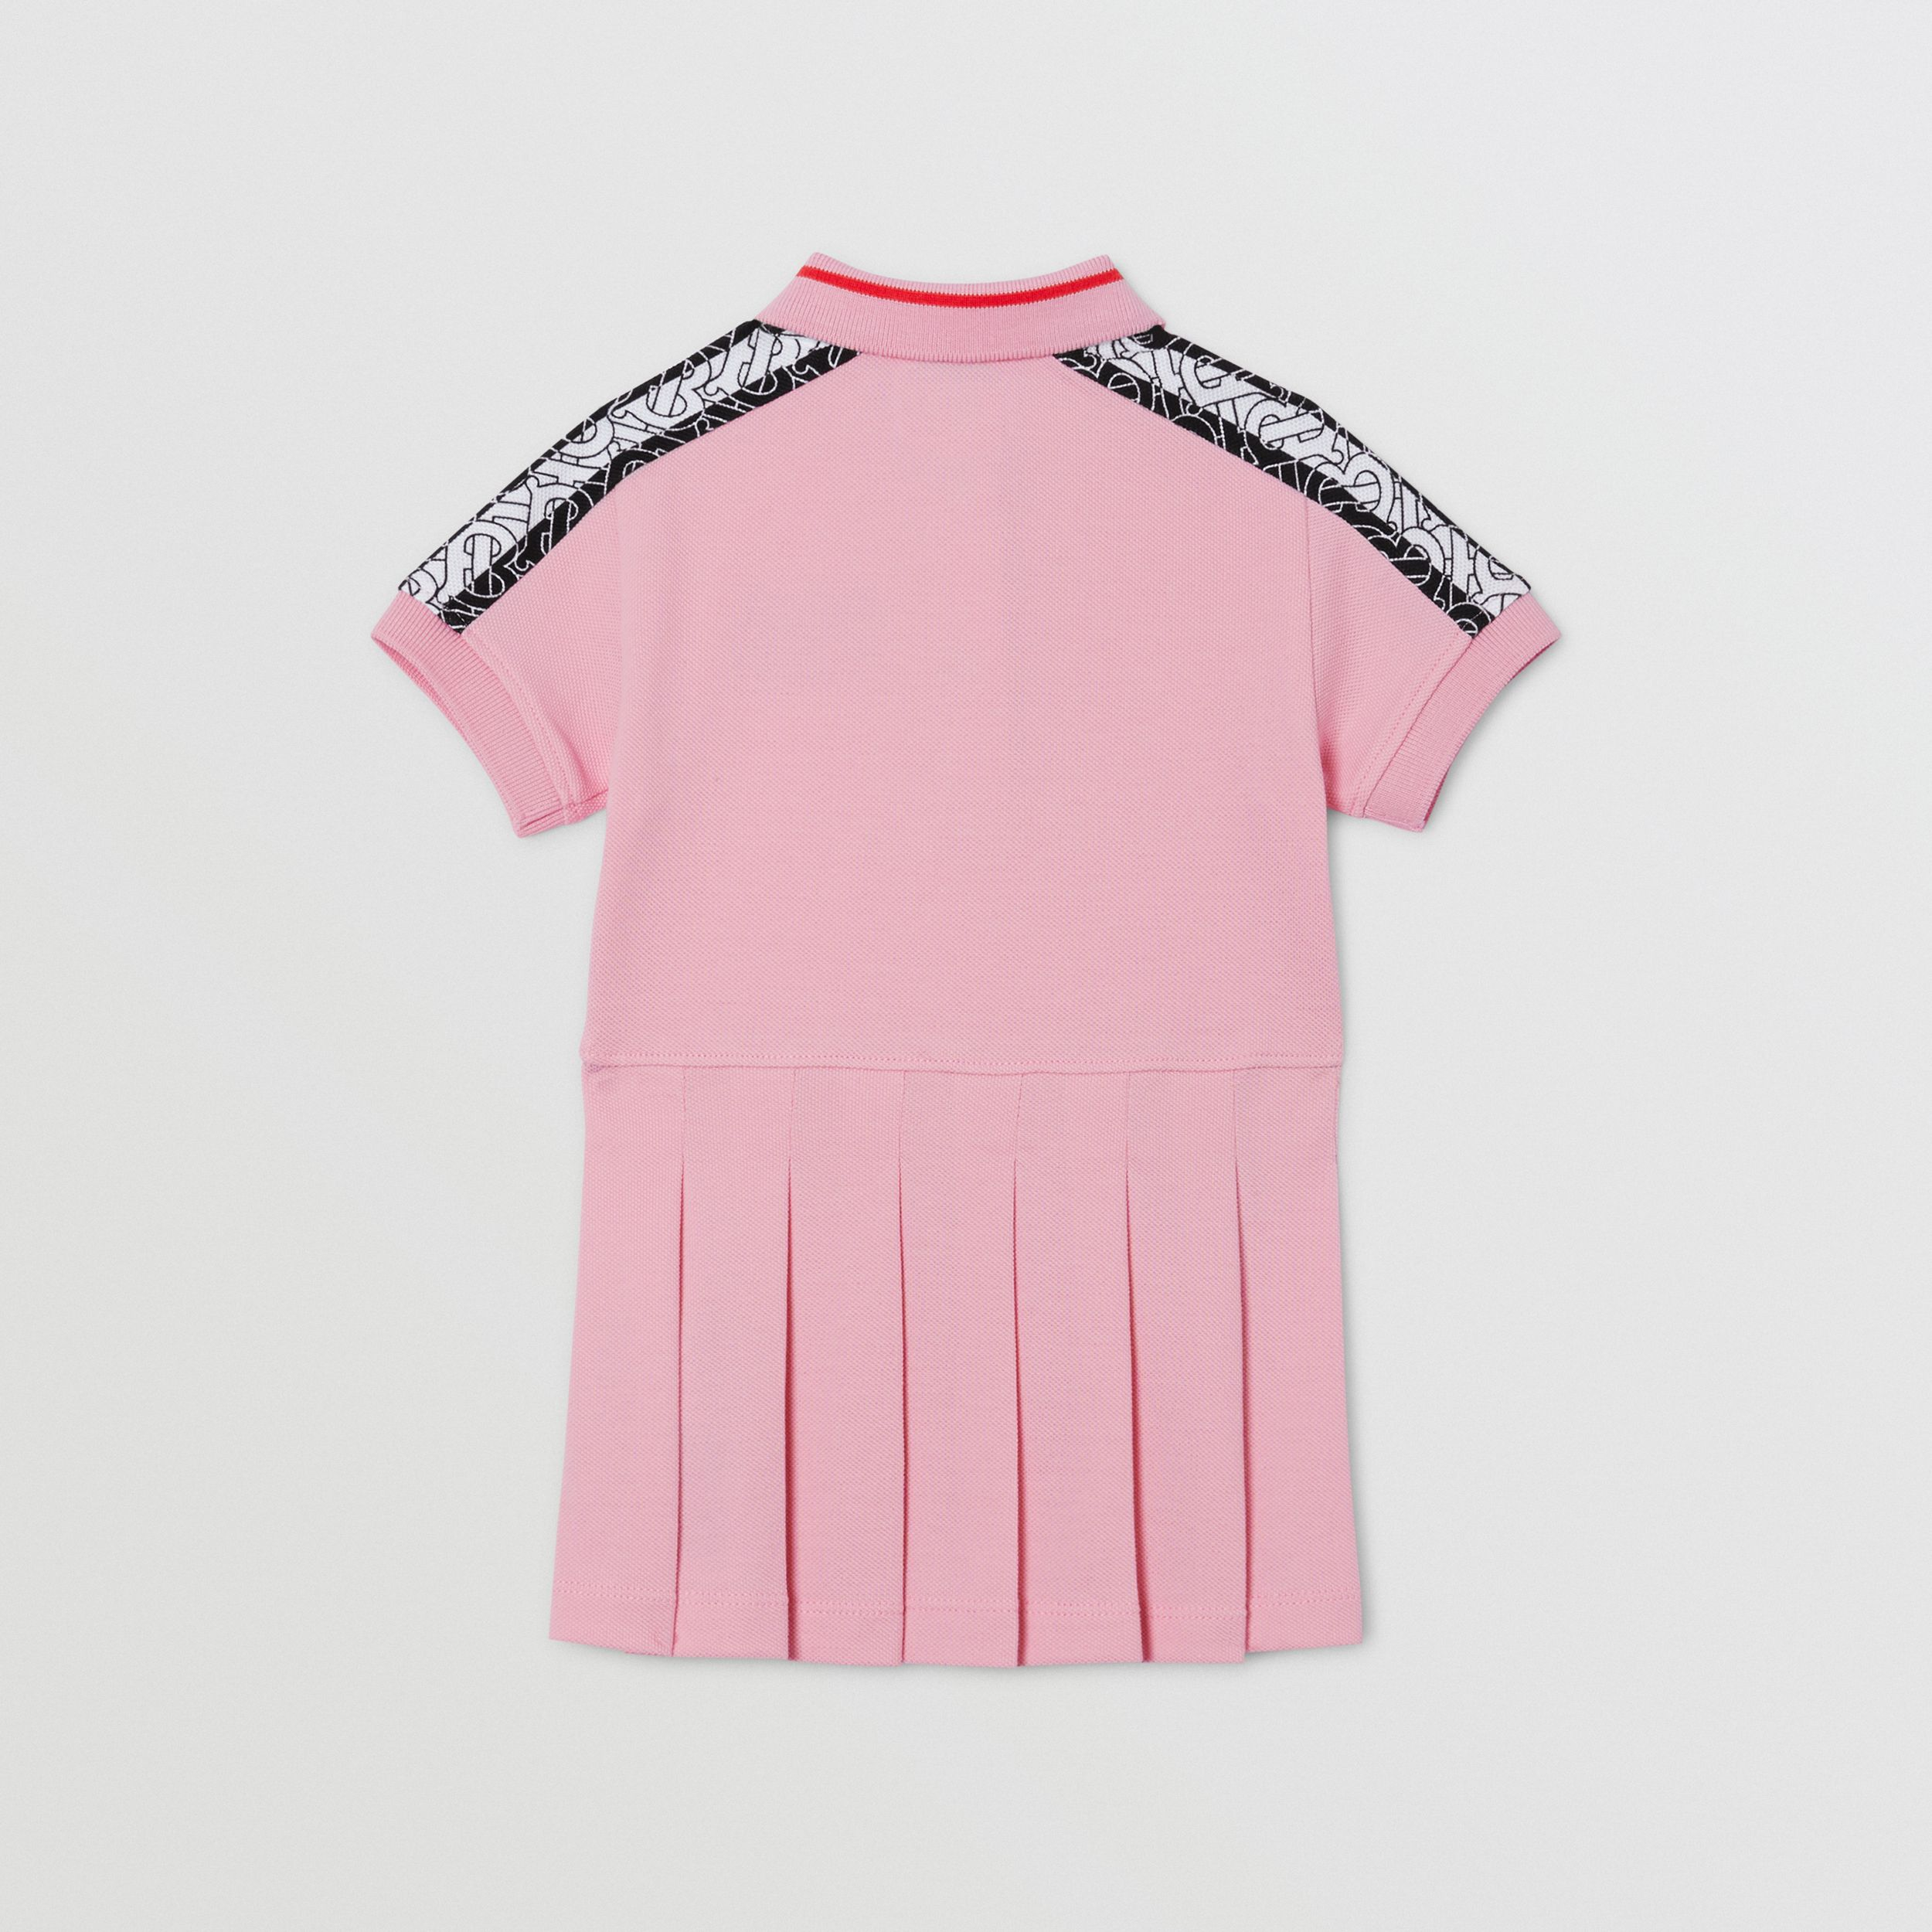 Monogram Stripe Print Cotton Piqué Polo Shirt Dress in Candy Pink - Children | Burberry - 4